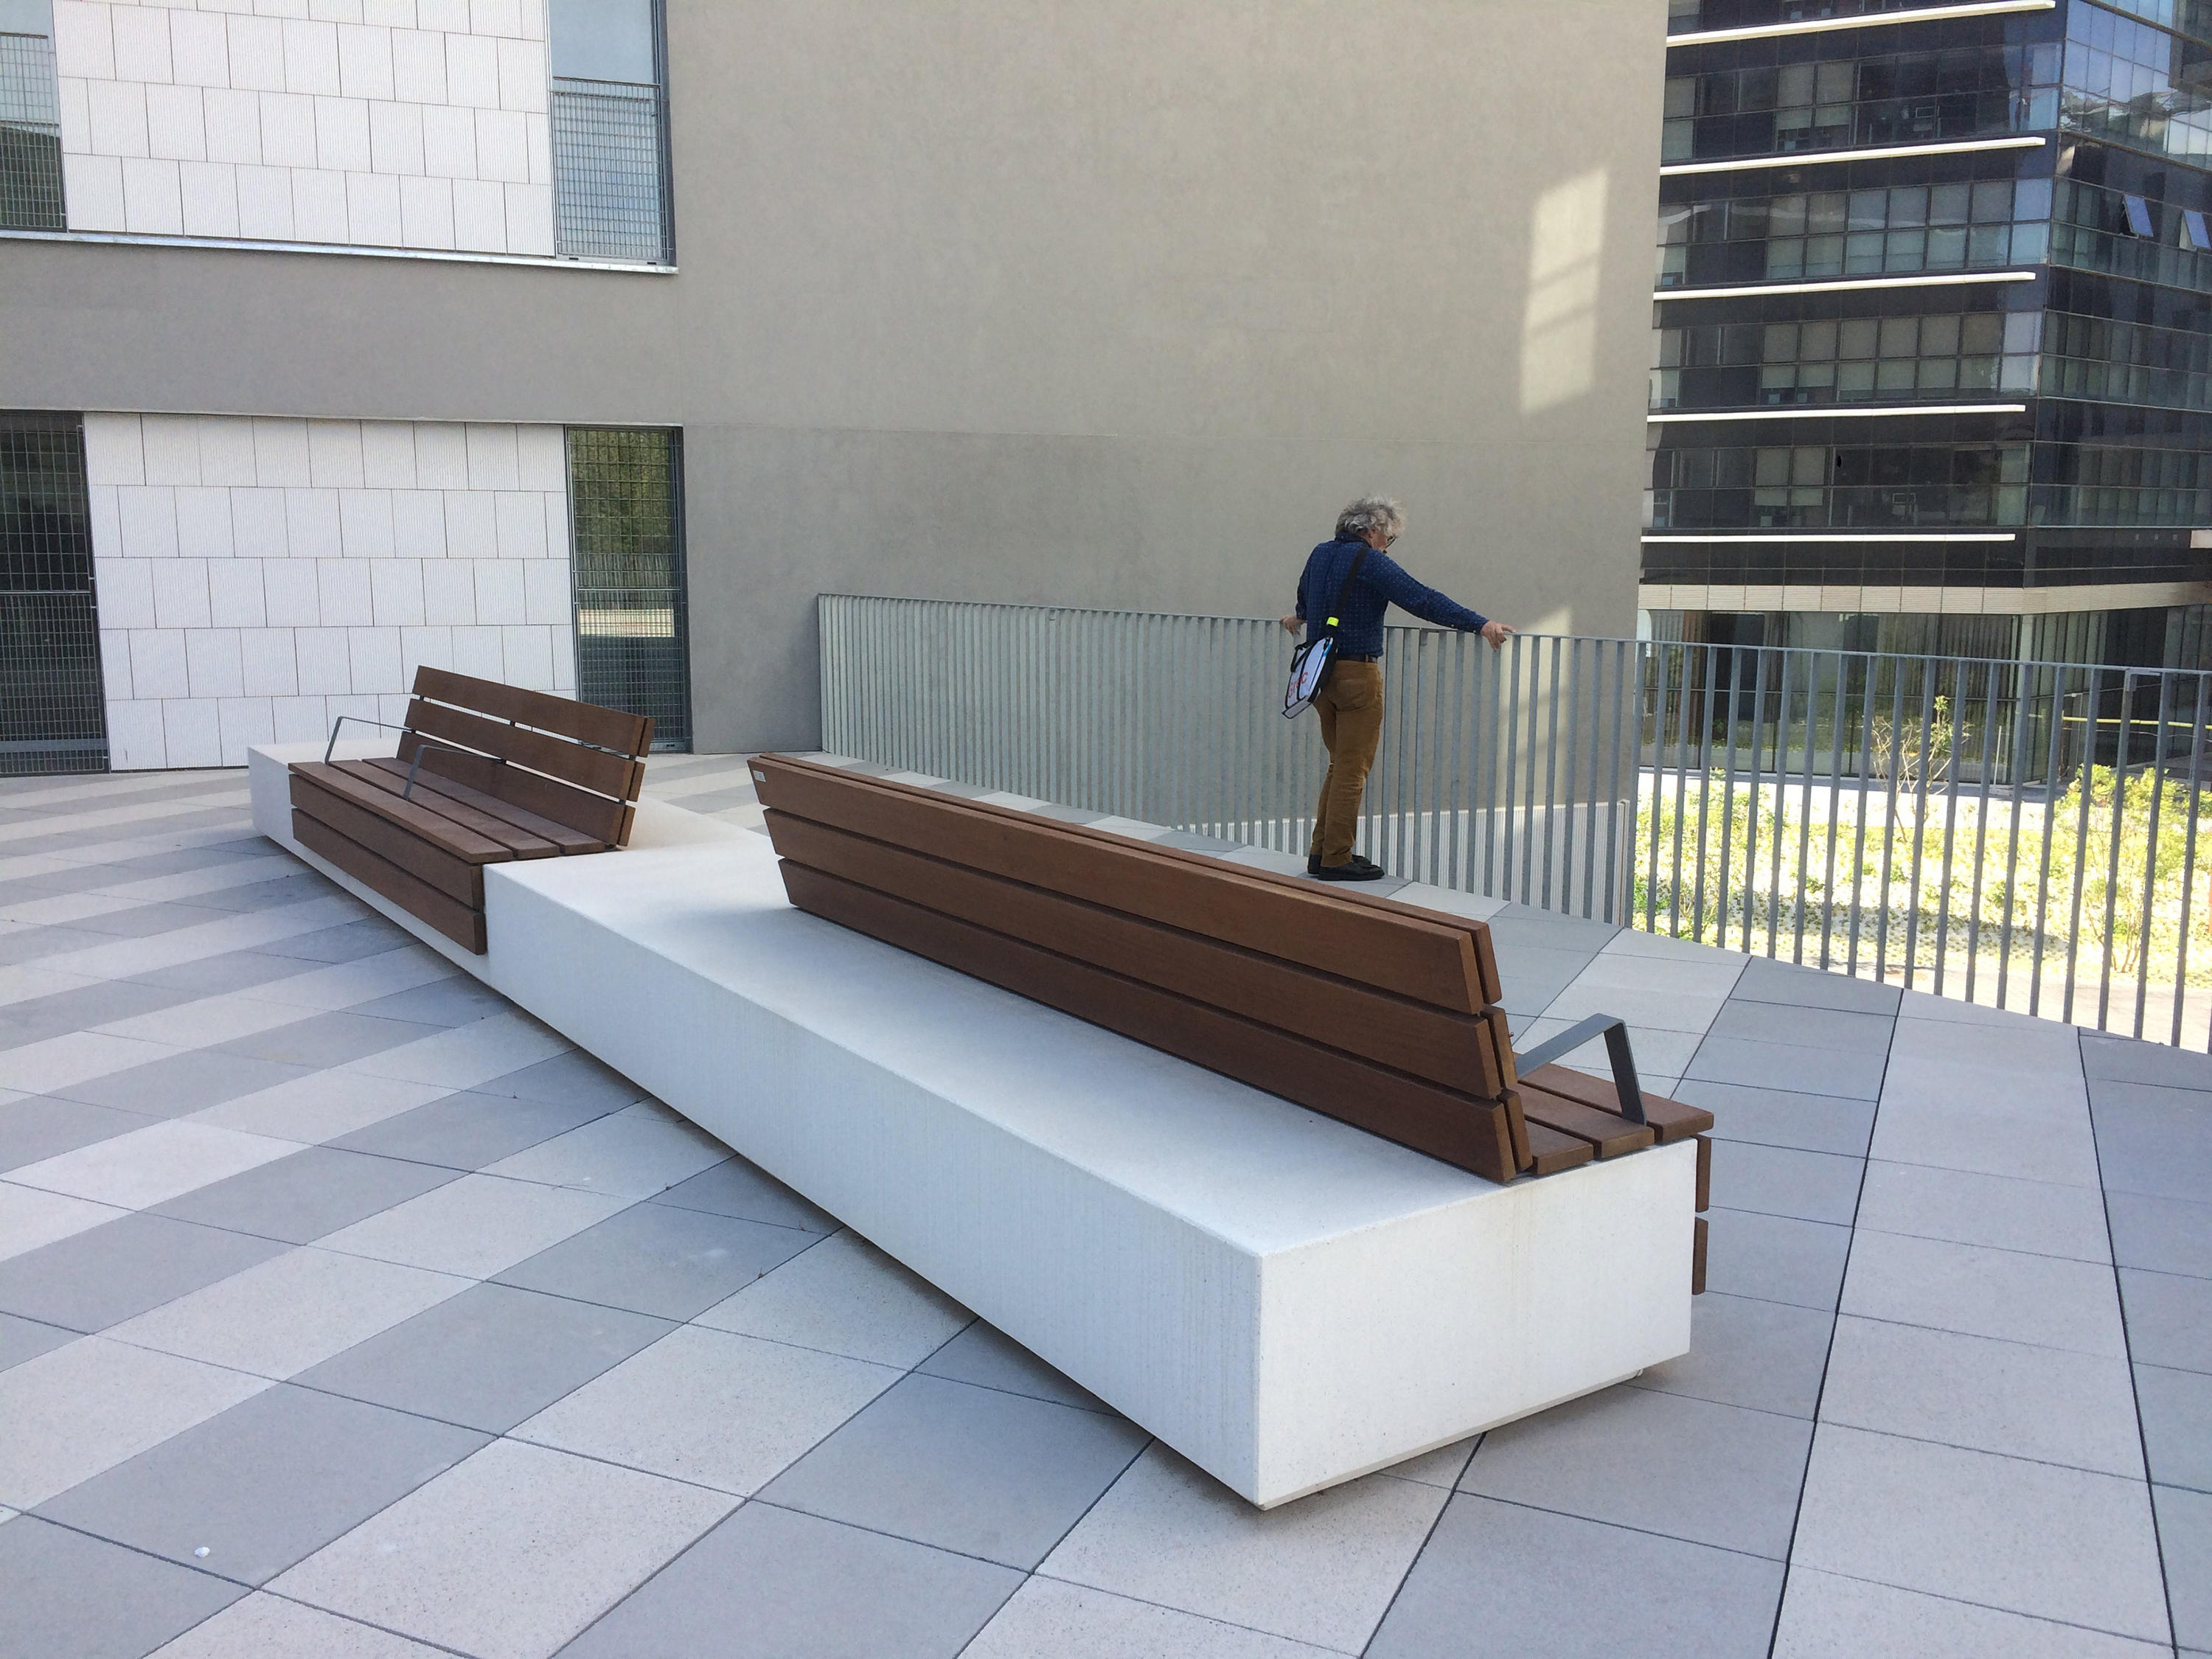 Longo Exterior Benches From Escofet 1886 Architonic